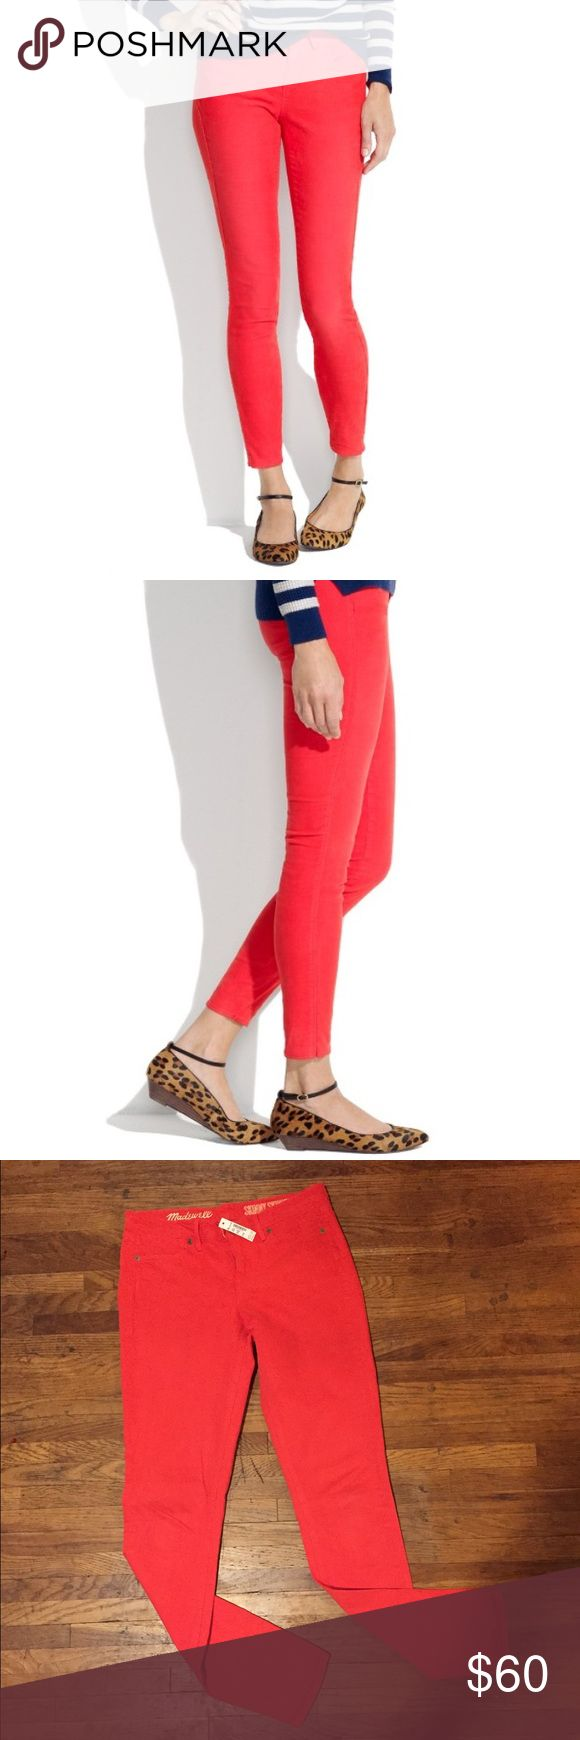 MADEWELL Bright Red Skinny Skinny Color Pants 26 Brand new with tags MADEWELL Orange Red Skinny Skinny Pants in size 26. Inseam 32. Madewell Pants Skinny